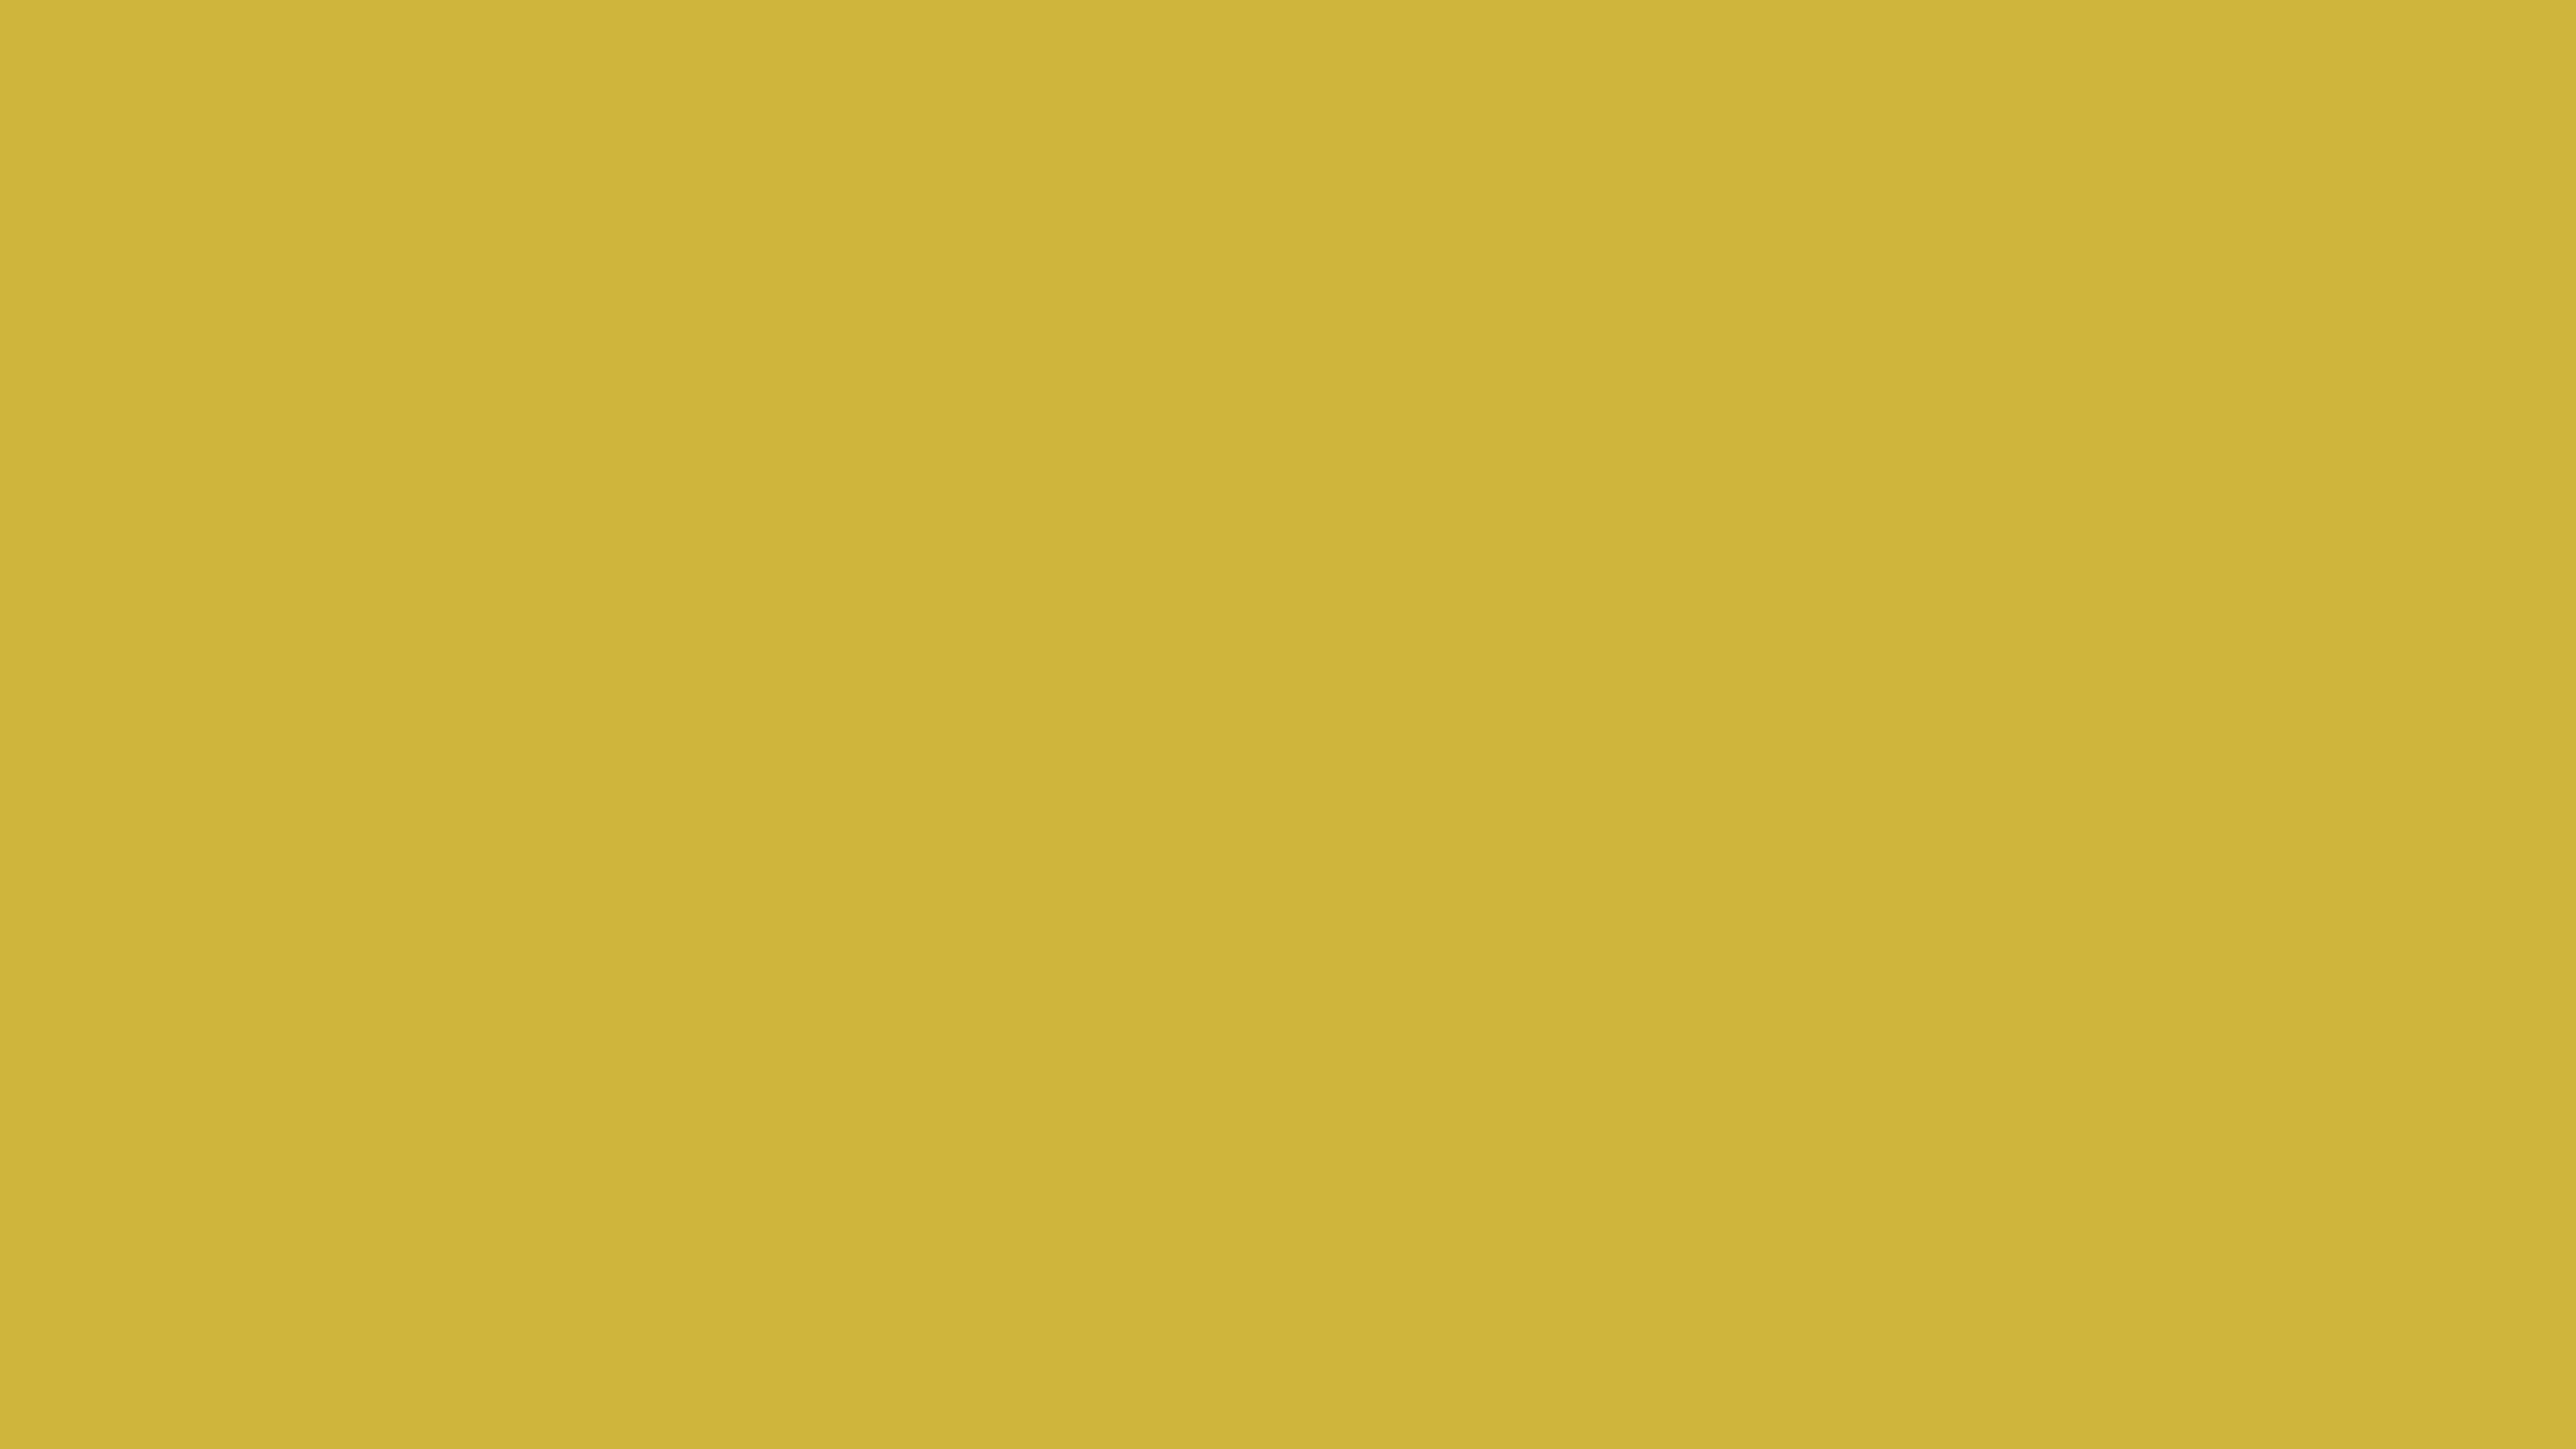 5120x2880 Old Gold Solid Color Background